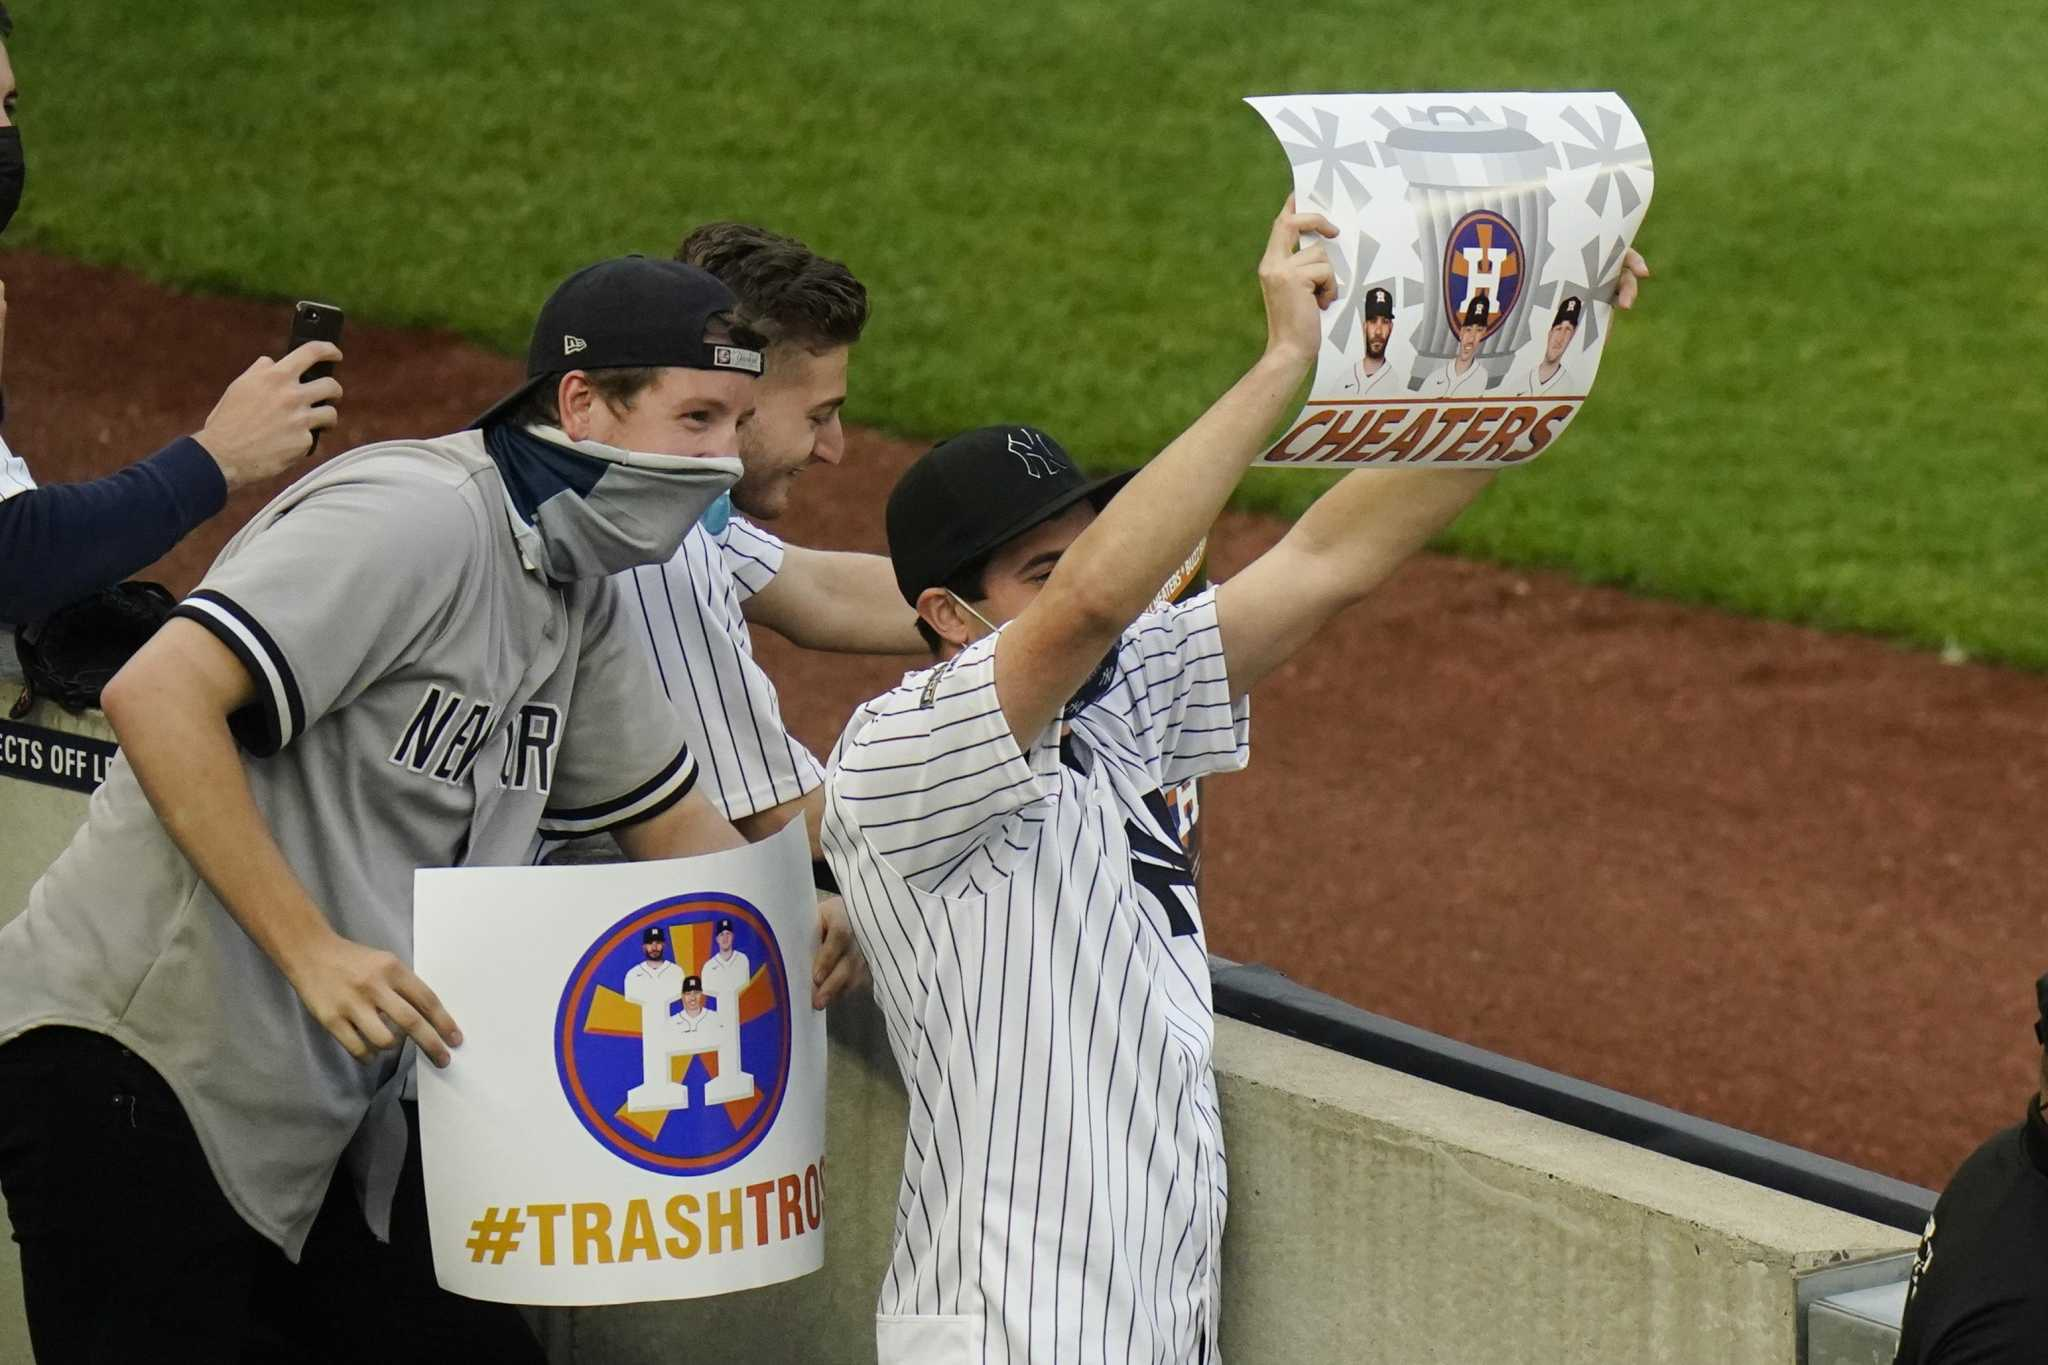 Smith: Astros' reception in New York is old boos